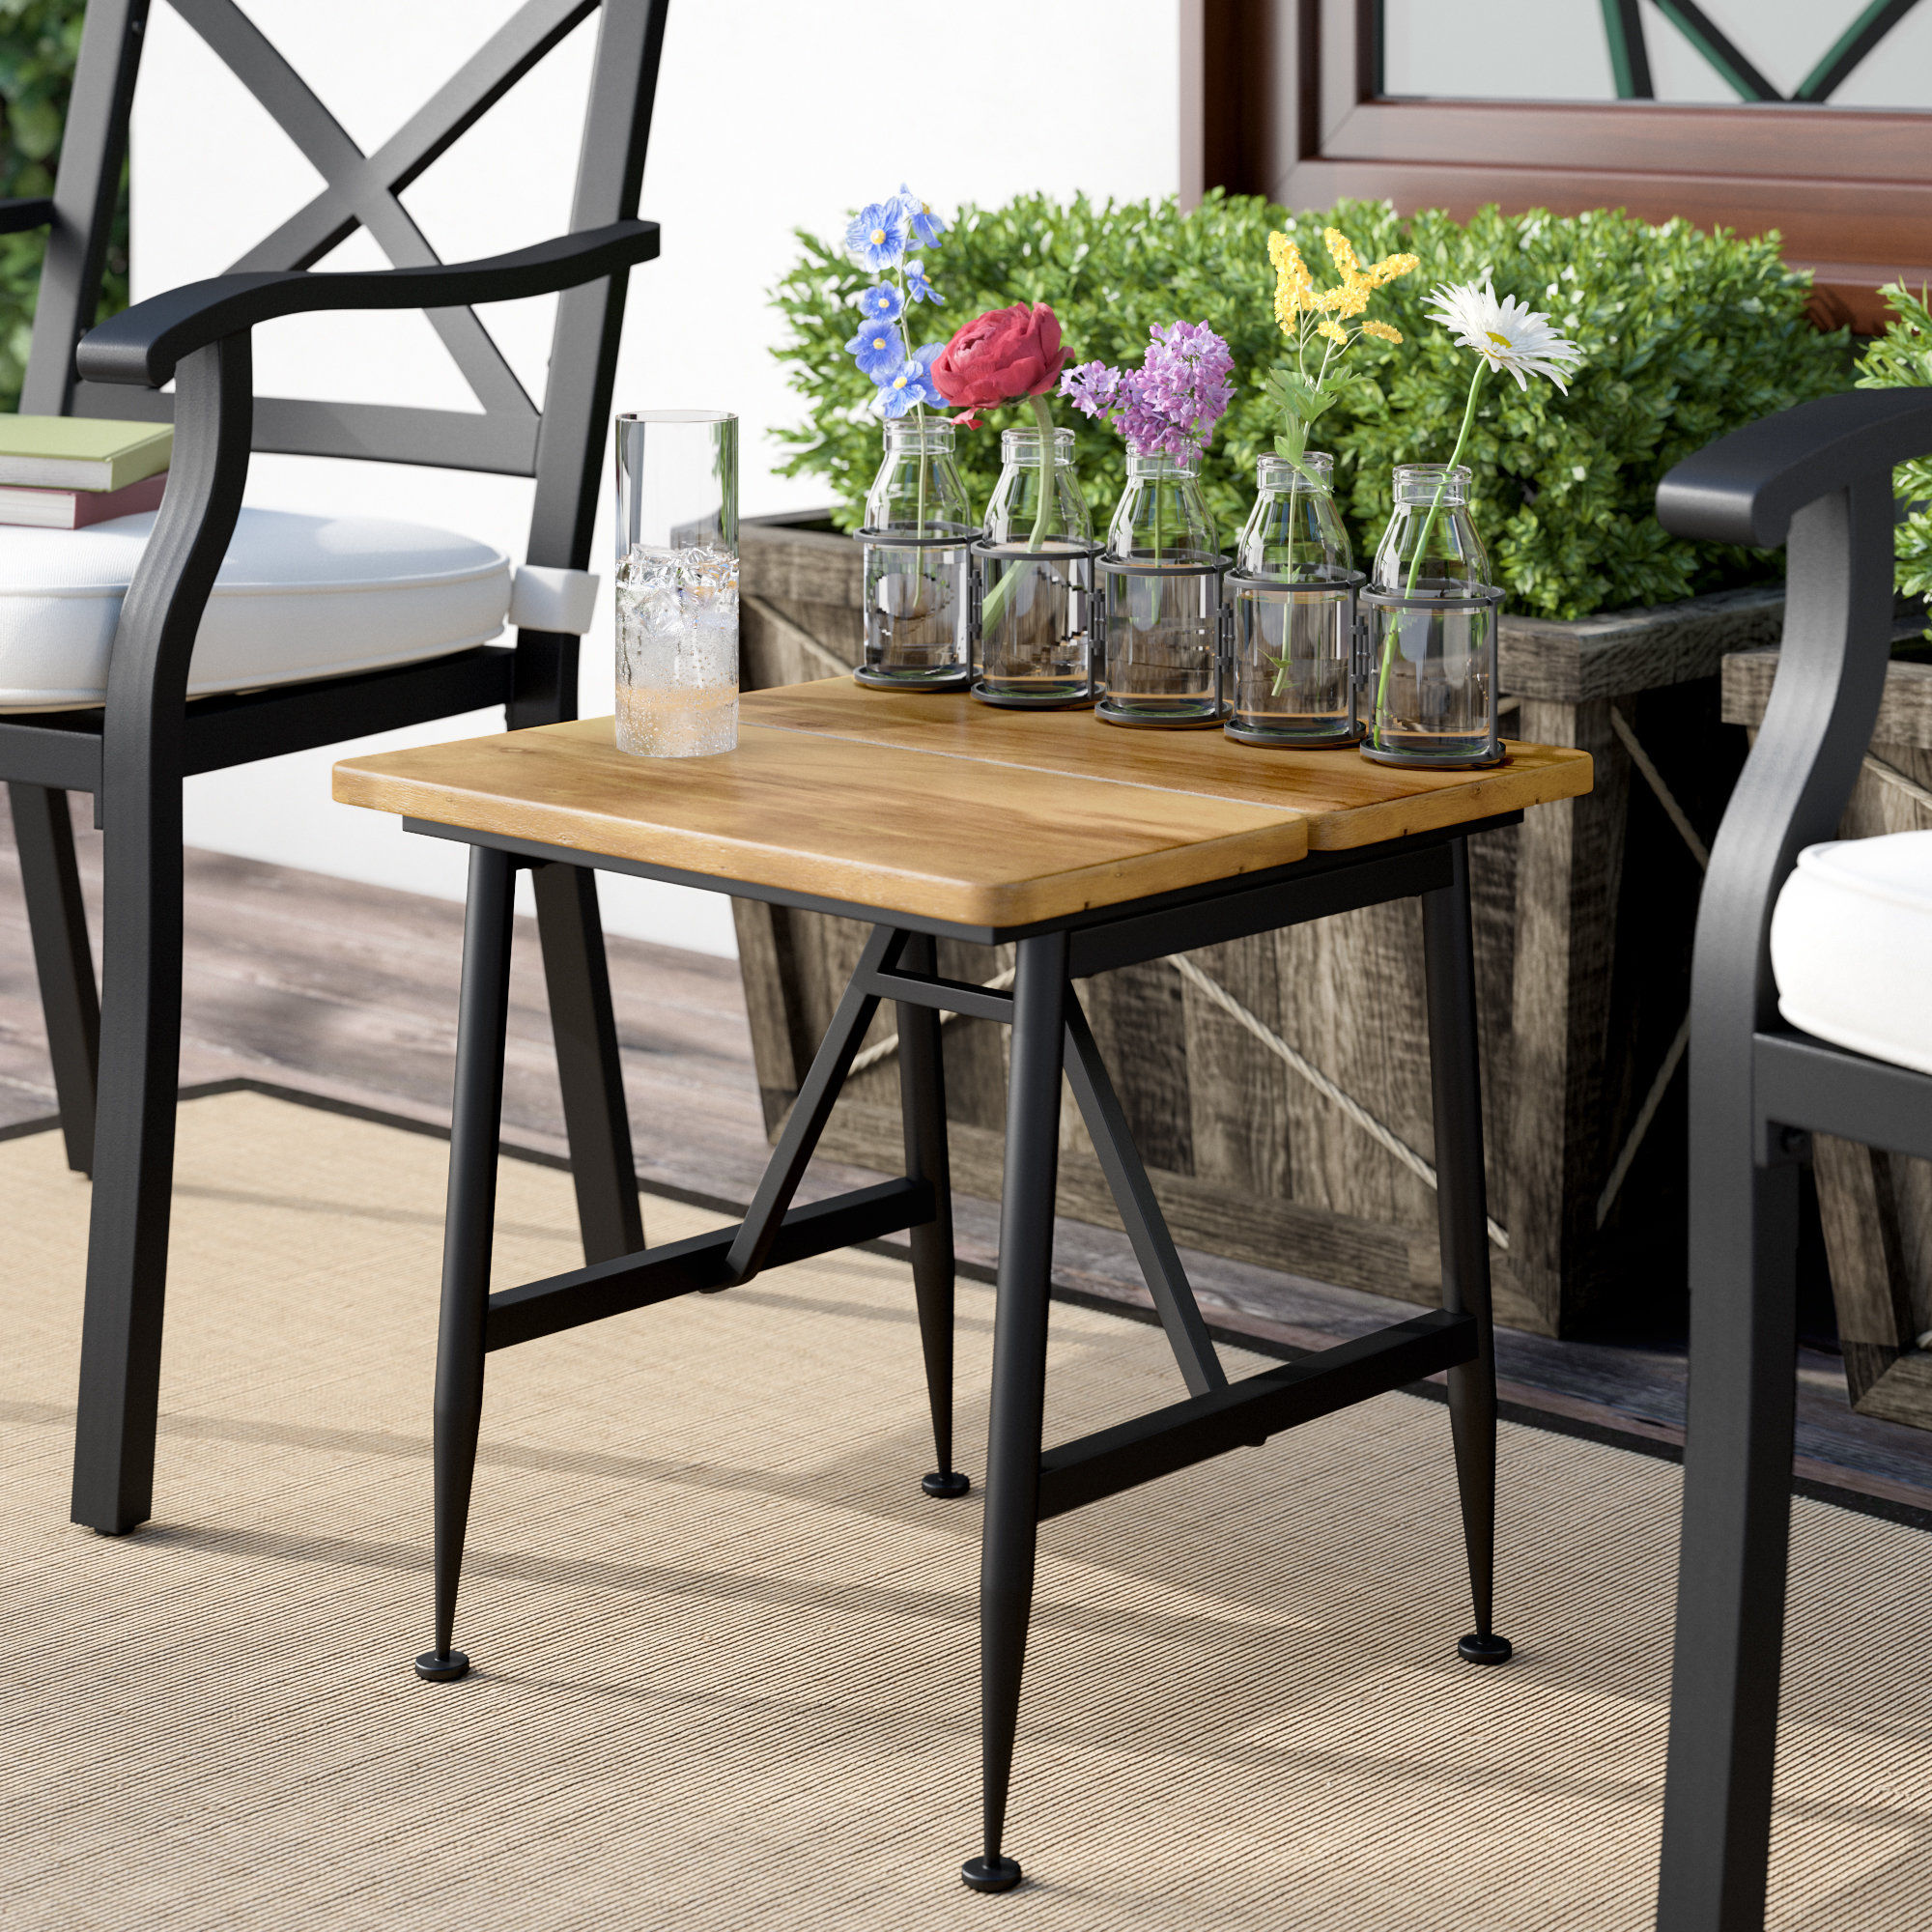 gracie oaks frankston outdoor wood accent table reviews metal kitchen bins ikea pieces for shelves diy industrial coffee rustic furniture nautical lighting ideas cream bedside